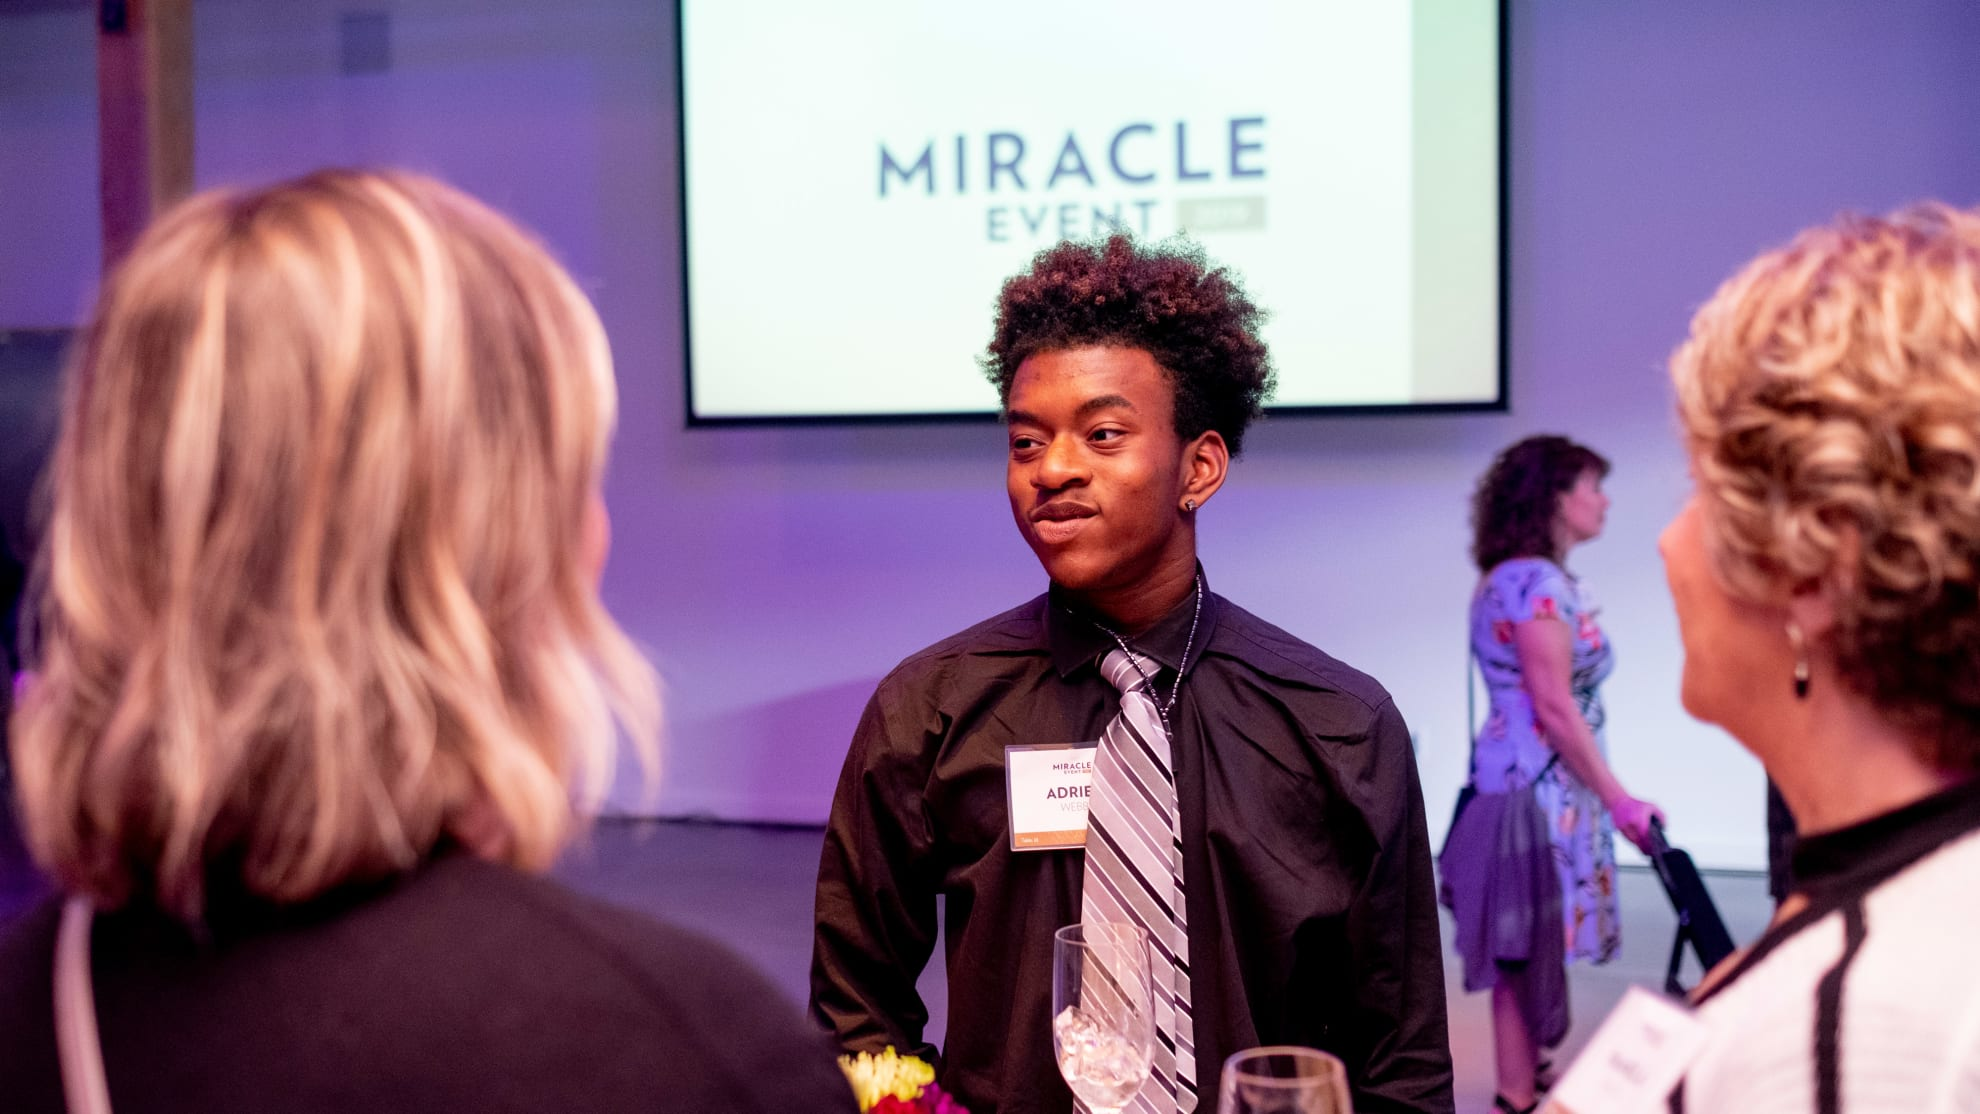 Adriene a student at SUA speaks with Miracle Event Guests